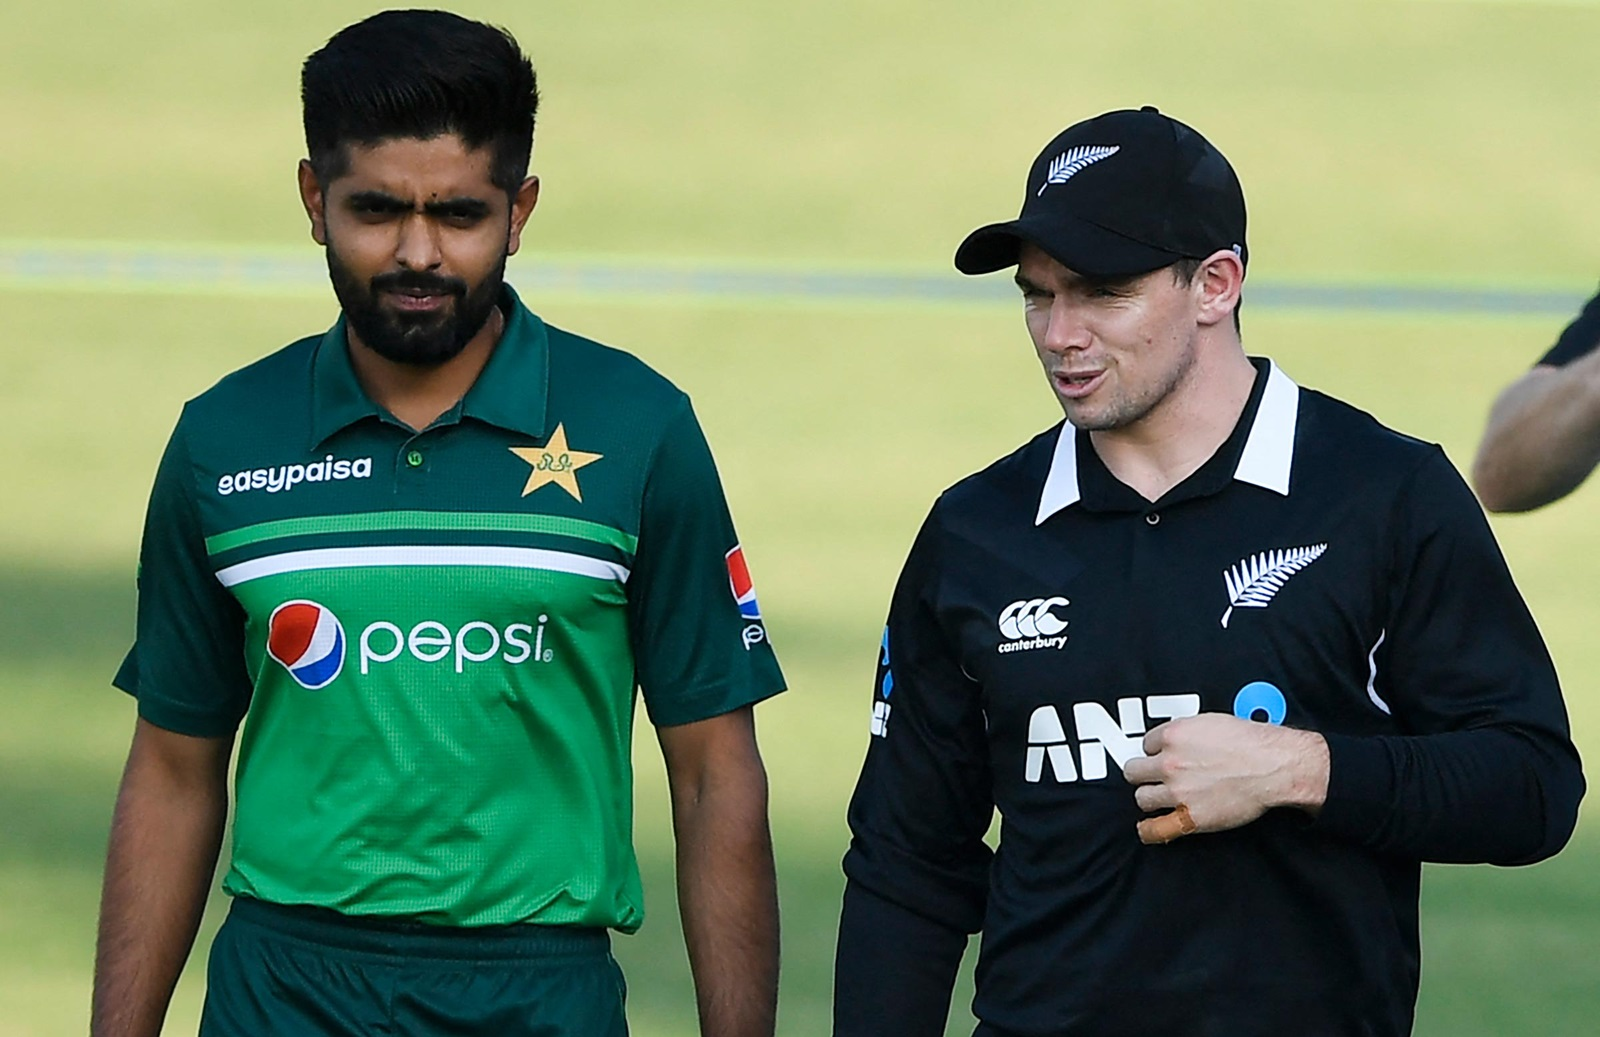 pcb-turns-down-new-zealand-cricket-board-s-offer-to-reschedule-series